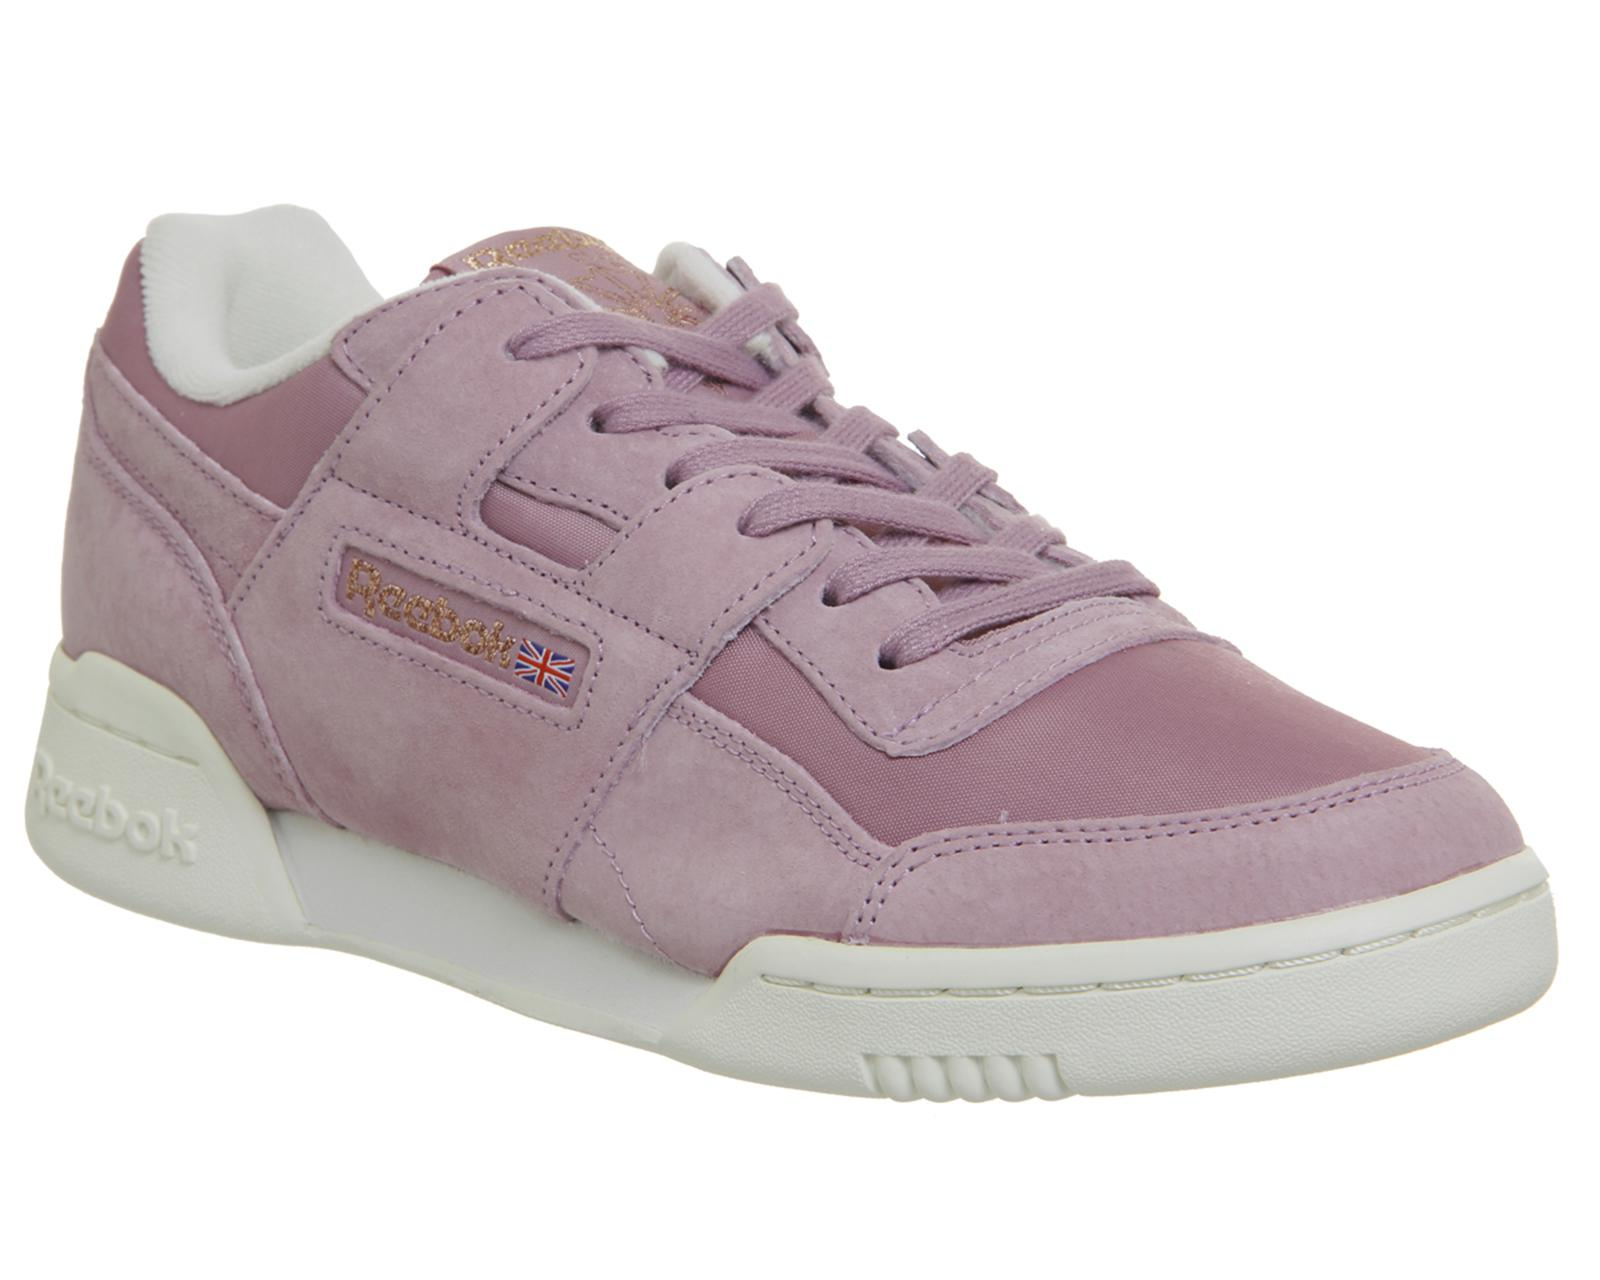 Reebok Workout Lo Plus in Purple - Save 22.22222222222223% - Lyst 1de987c71